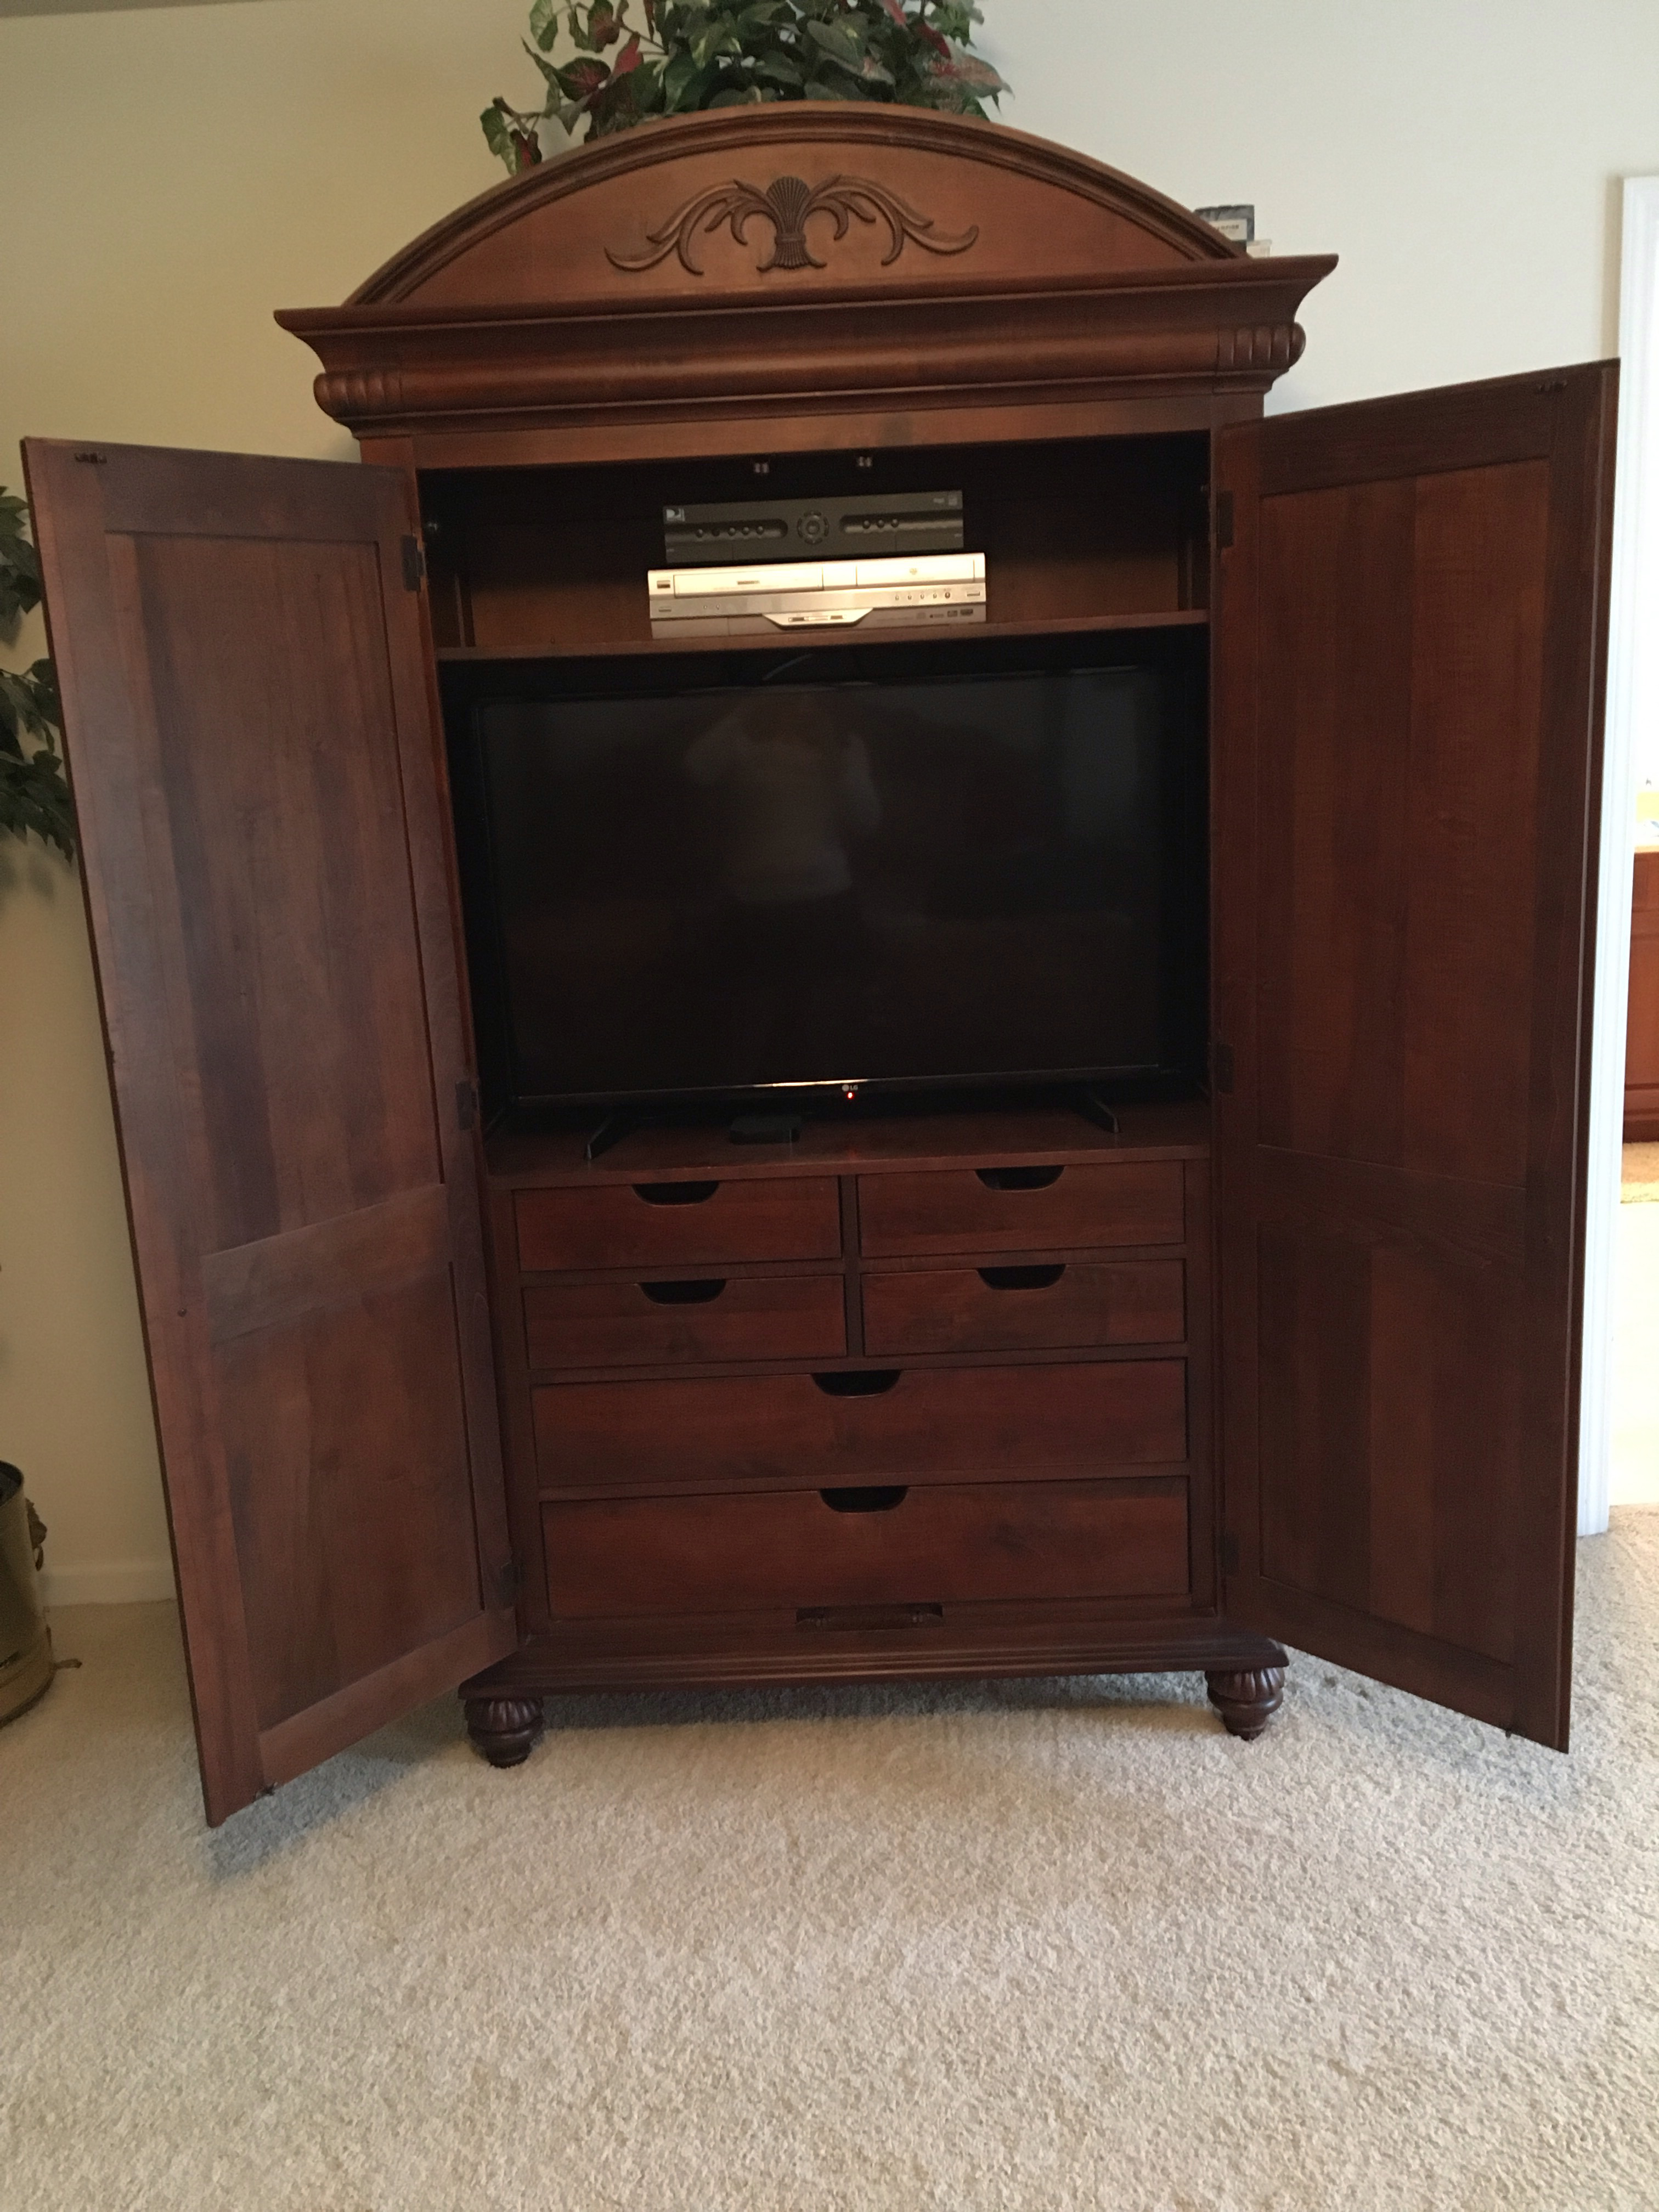 Charmant Ethan Allen British Classics Armoire